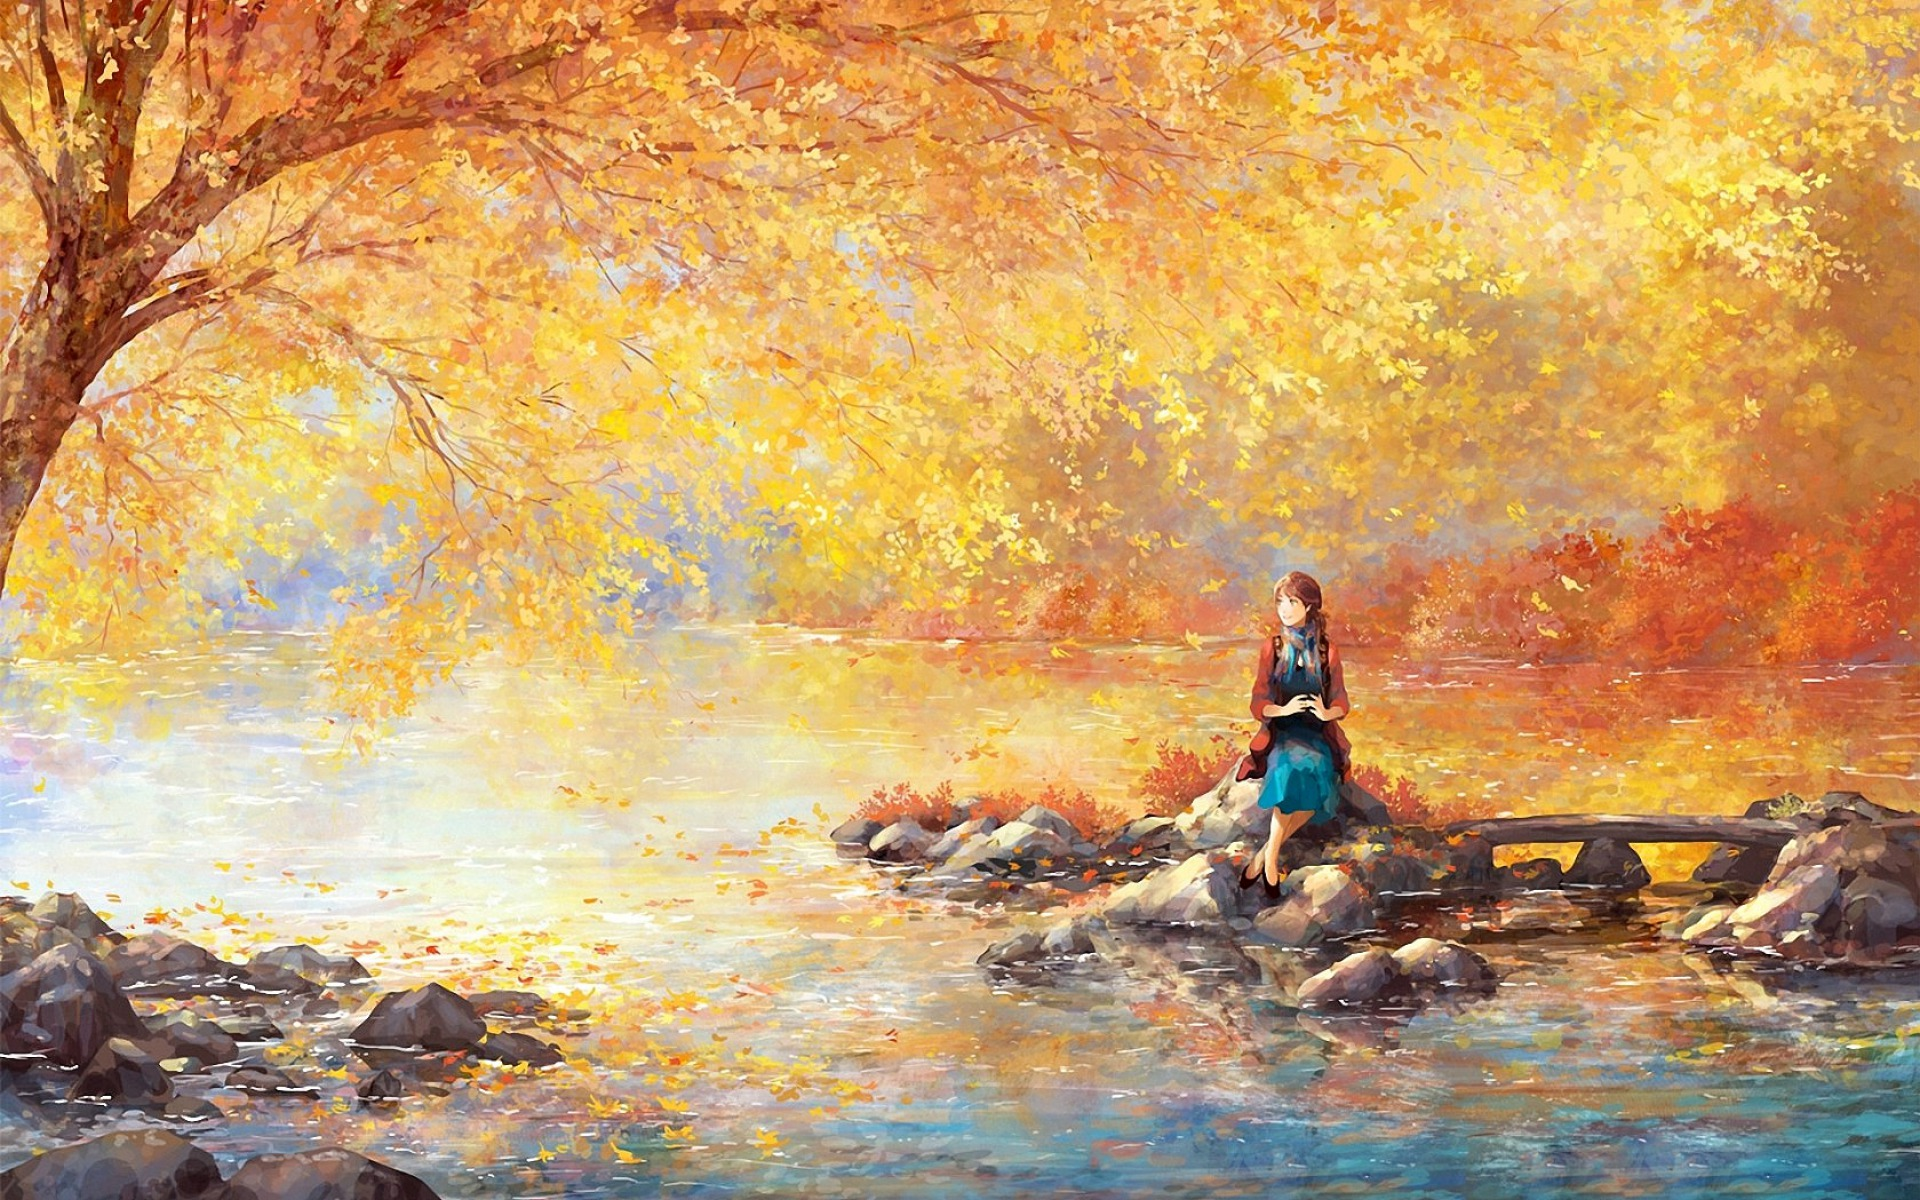 Anime Iphone X Wallpapers Deviantart Golden Tree Lake Woman Rocks Wallpapers Golden Tree Lake